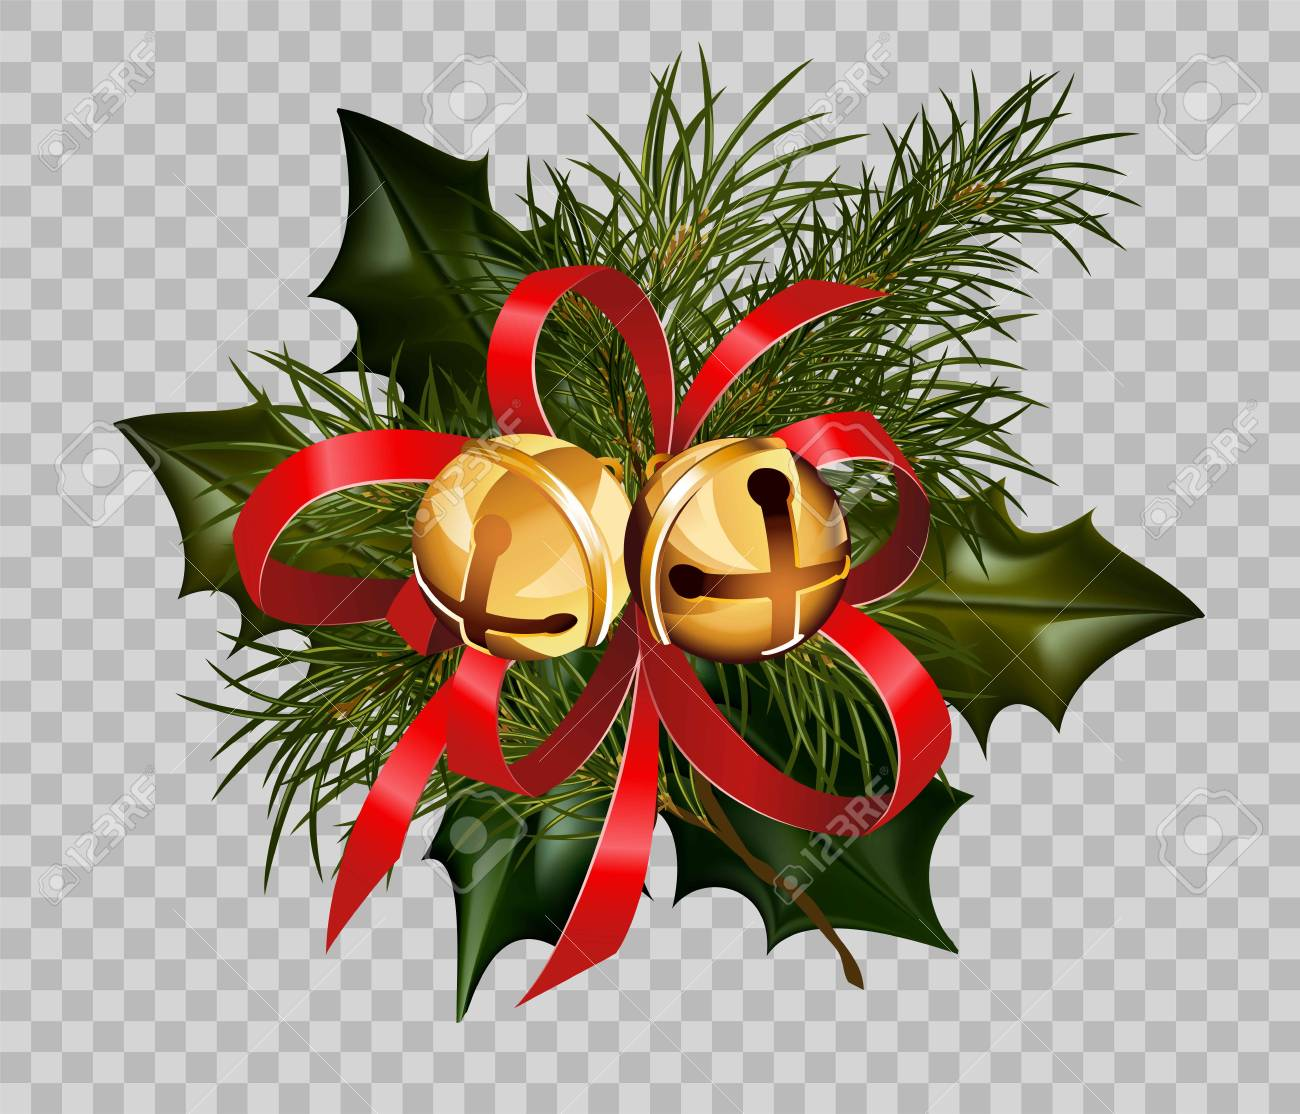 Christmas Decoration Design Template Of Holly Leaf And Fir Tree